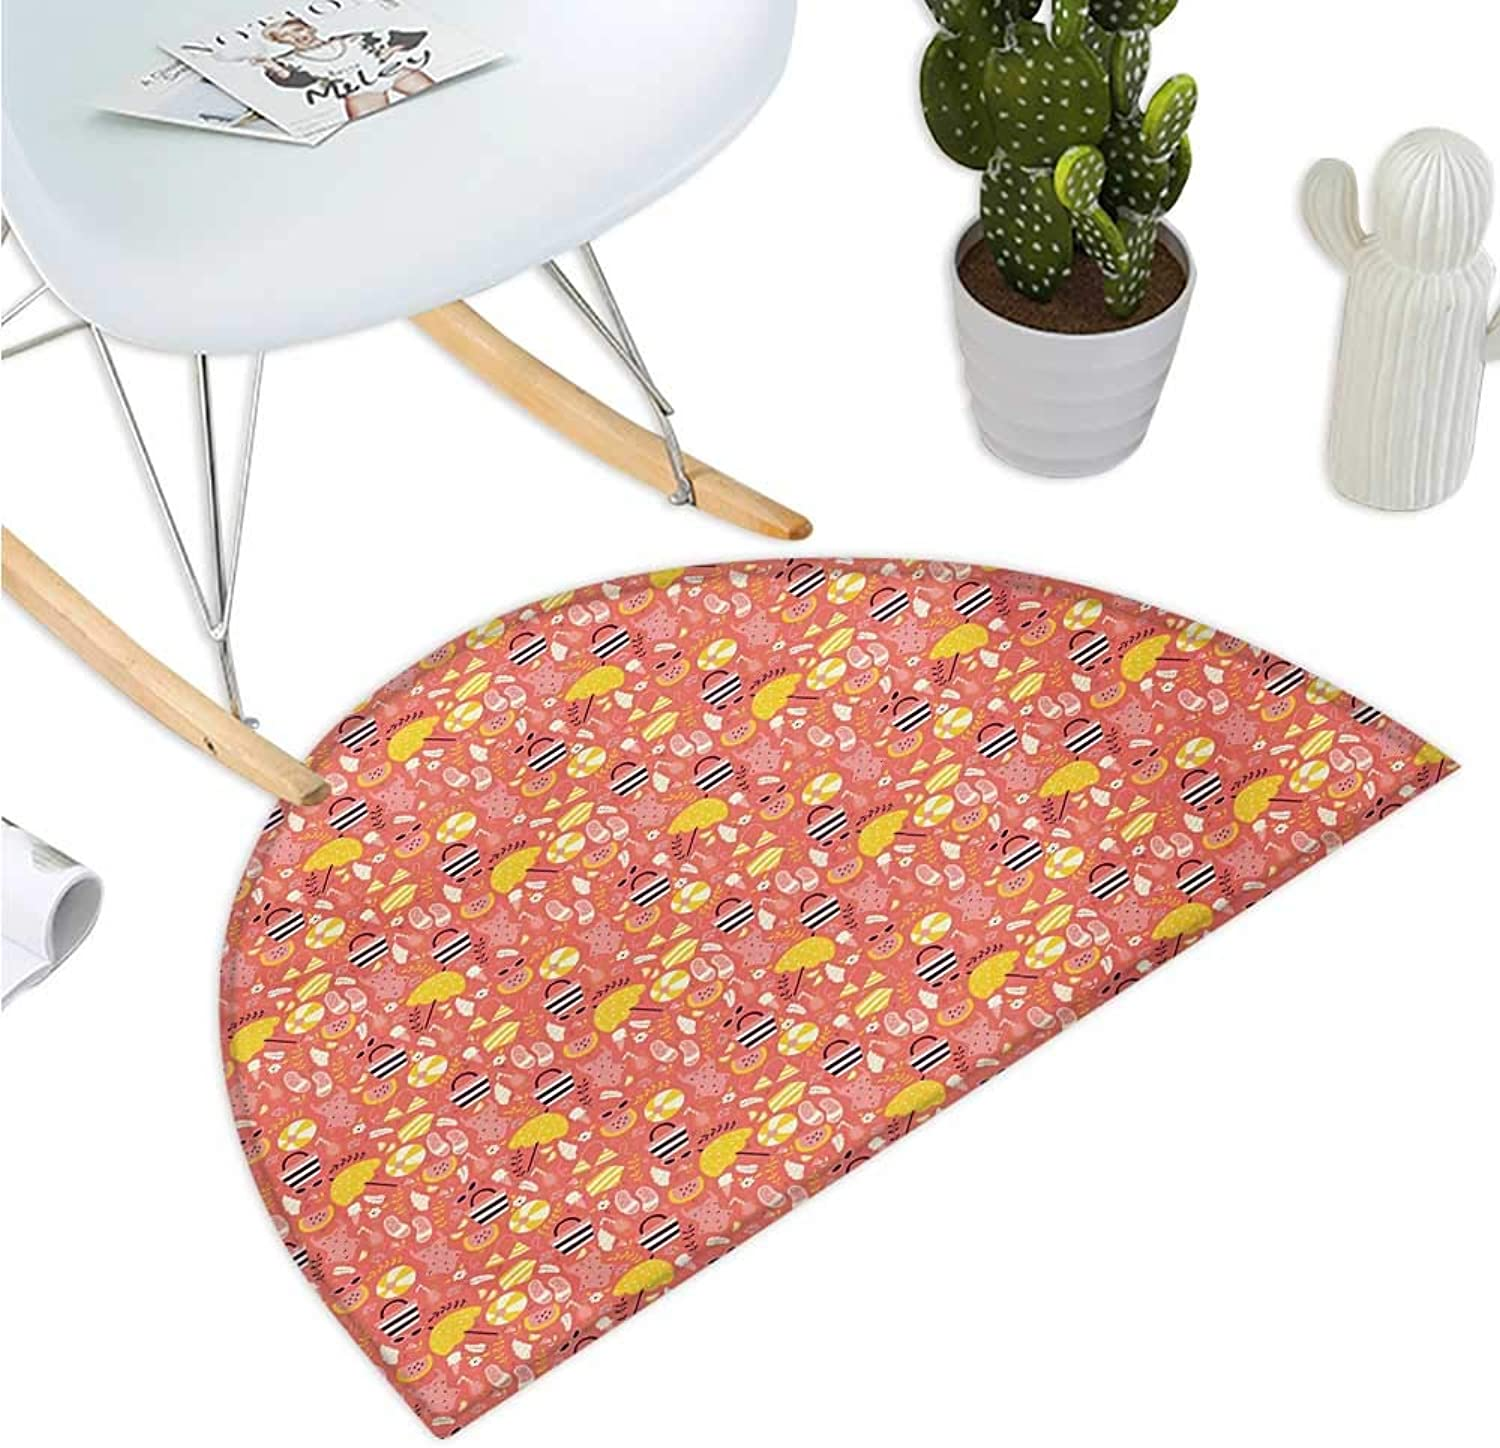 Beach Semicircular Cushion Hand Drawn Doodle Summer Pattern with Flip Flops Sunglasses Swimwear and Umbrella Entry Door Mat H 47.2  xD 70.8  Multicolor